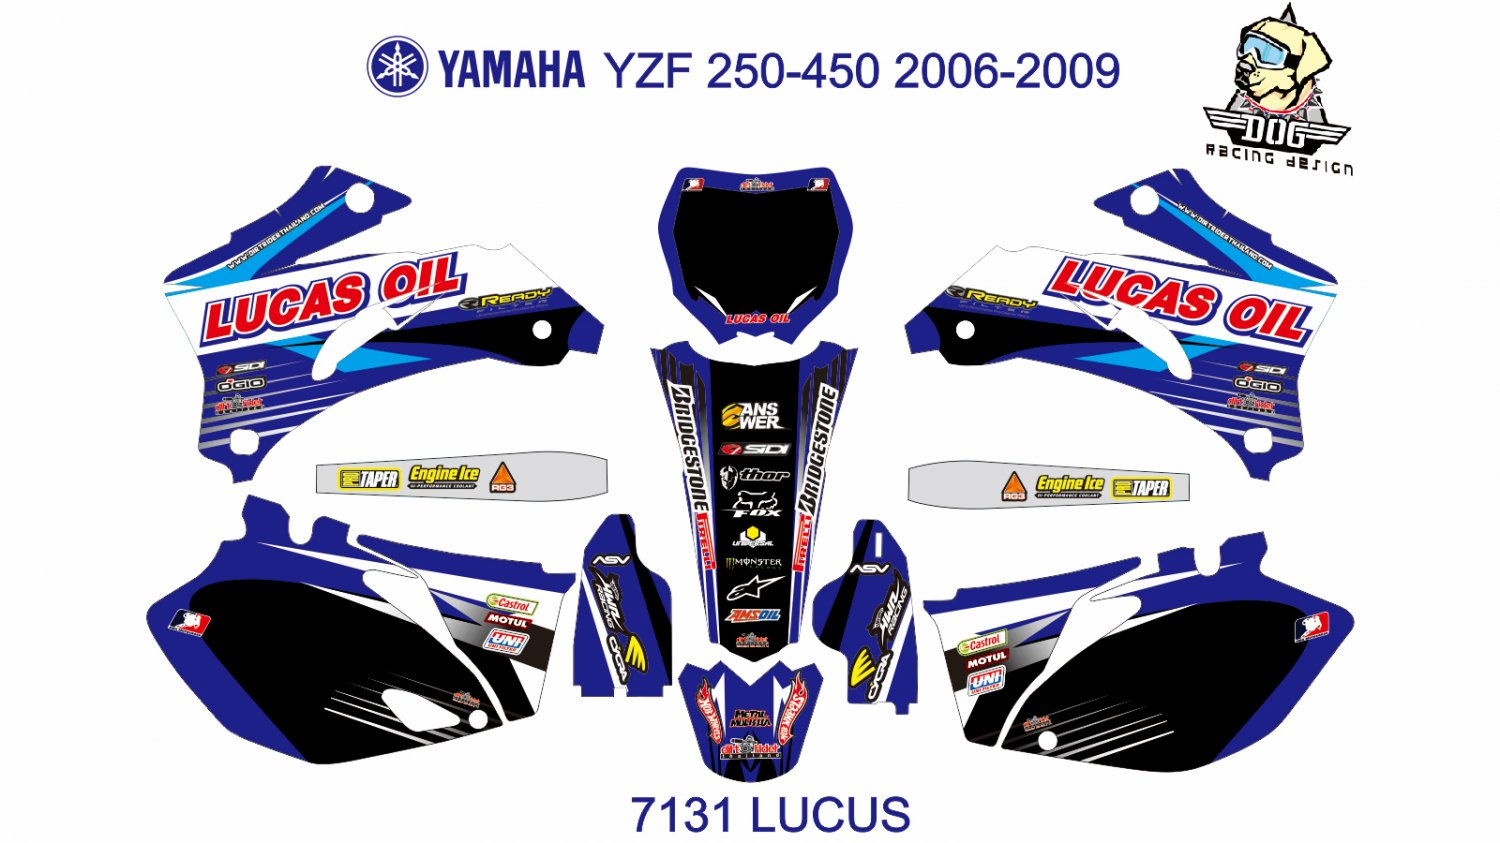 YAMAHA YZF 250-450 2006-2009 GRAPHIC DECAL KIT CODE.7131